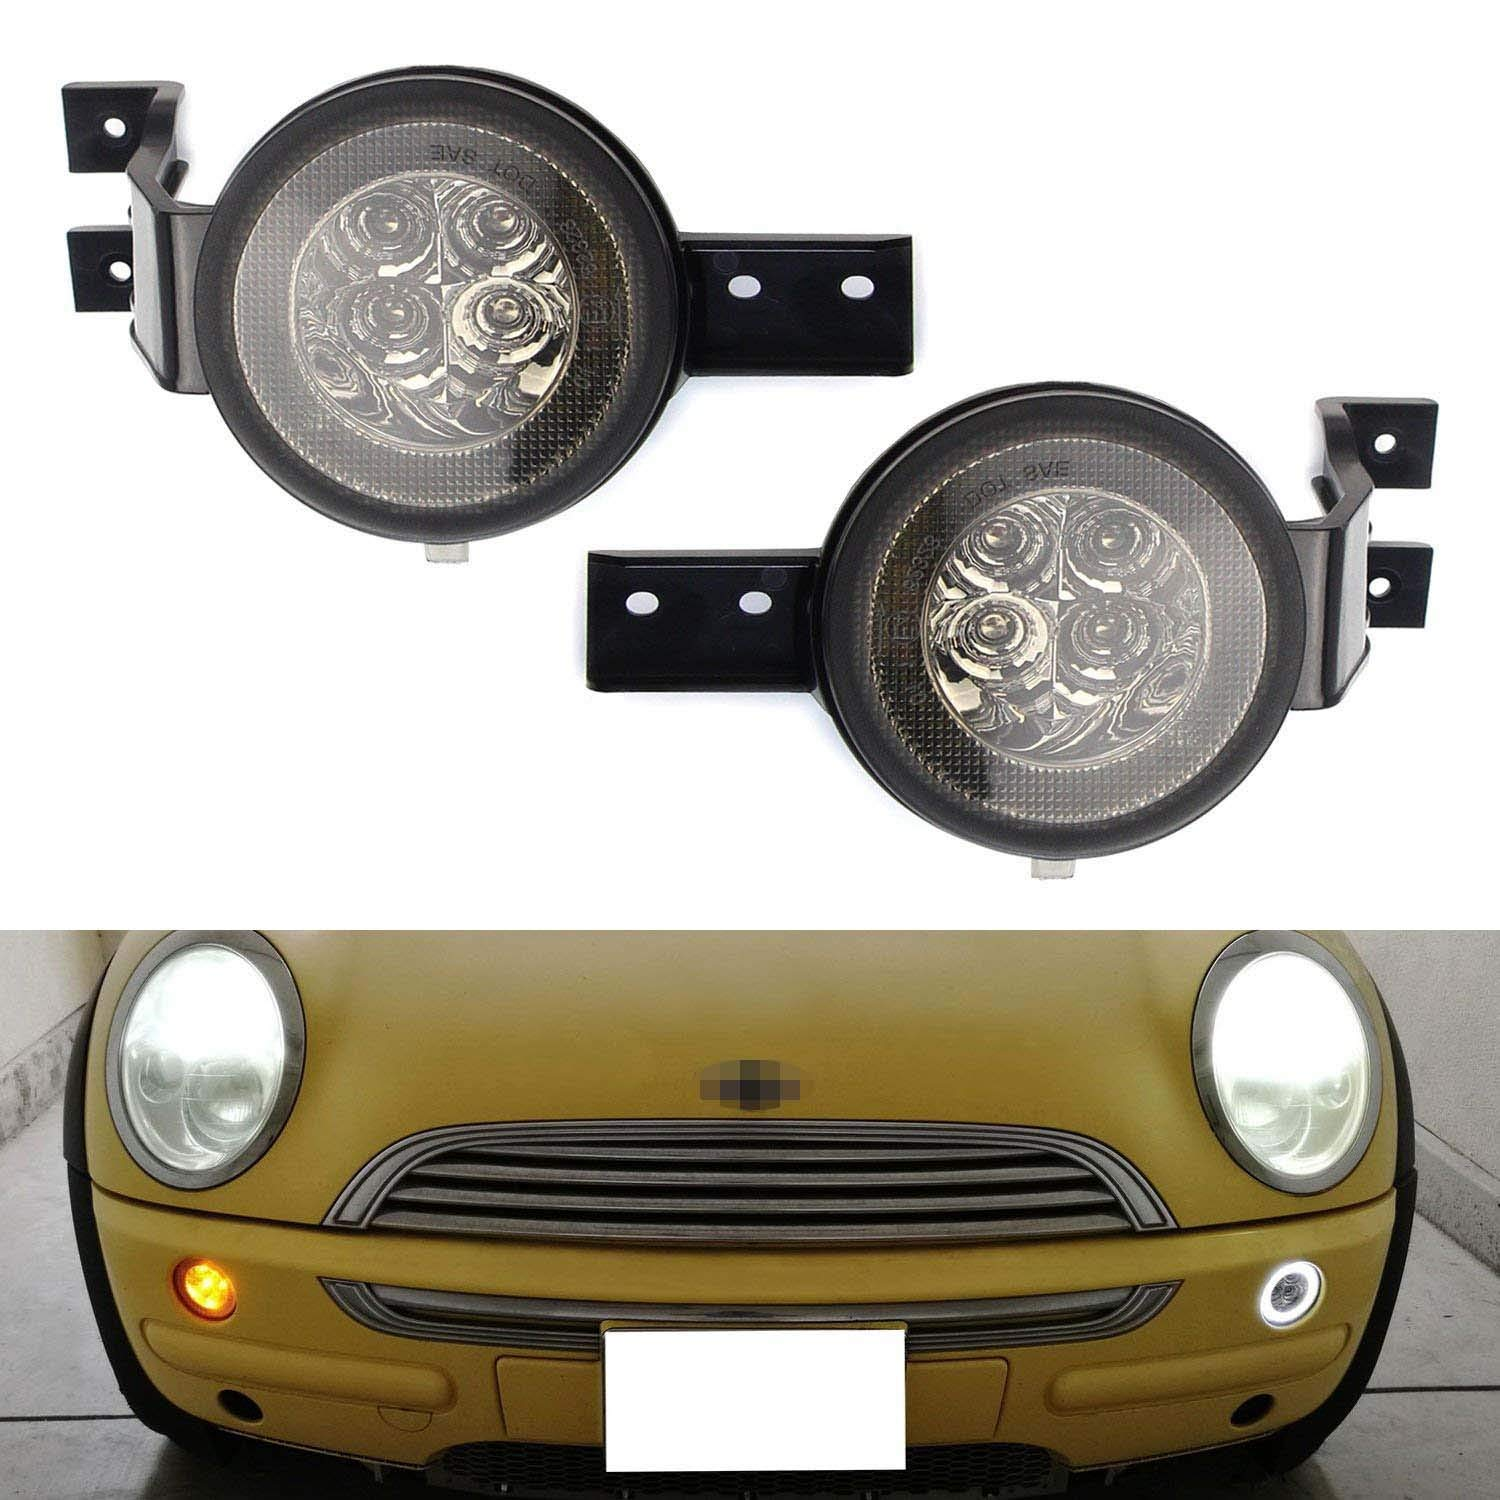 iJDMTOY Smoked Lens White LED DRL Parking Light/Turn Signal Compatible With 02-06 MINI Cooper R50 R53 Hatchback & 05-08 R52 Convertible, OEM Fit White Daytime Running Lights & Amber Turn Signal Lamps